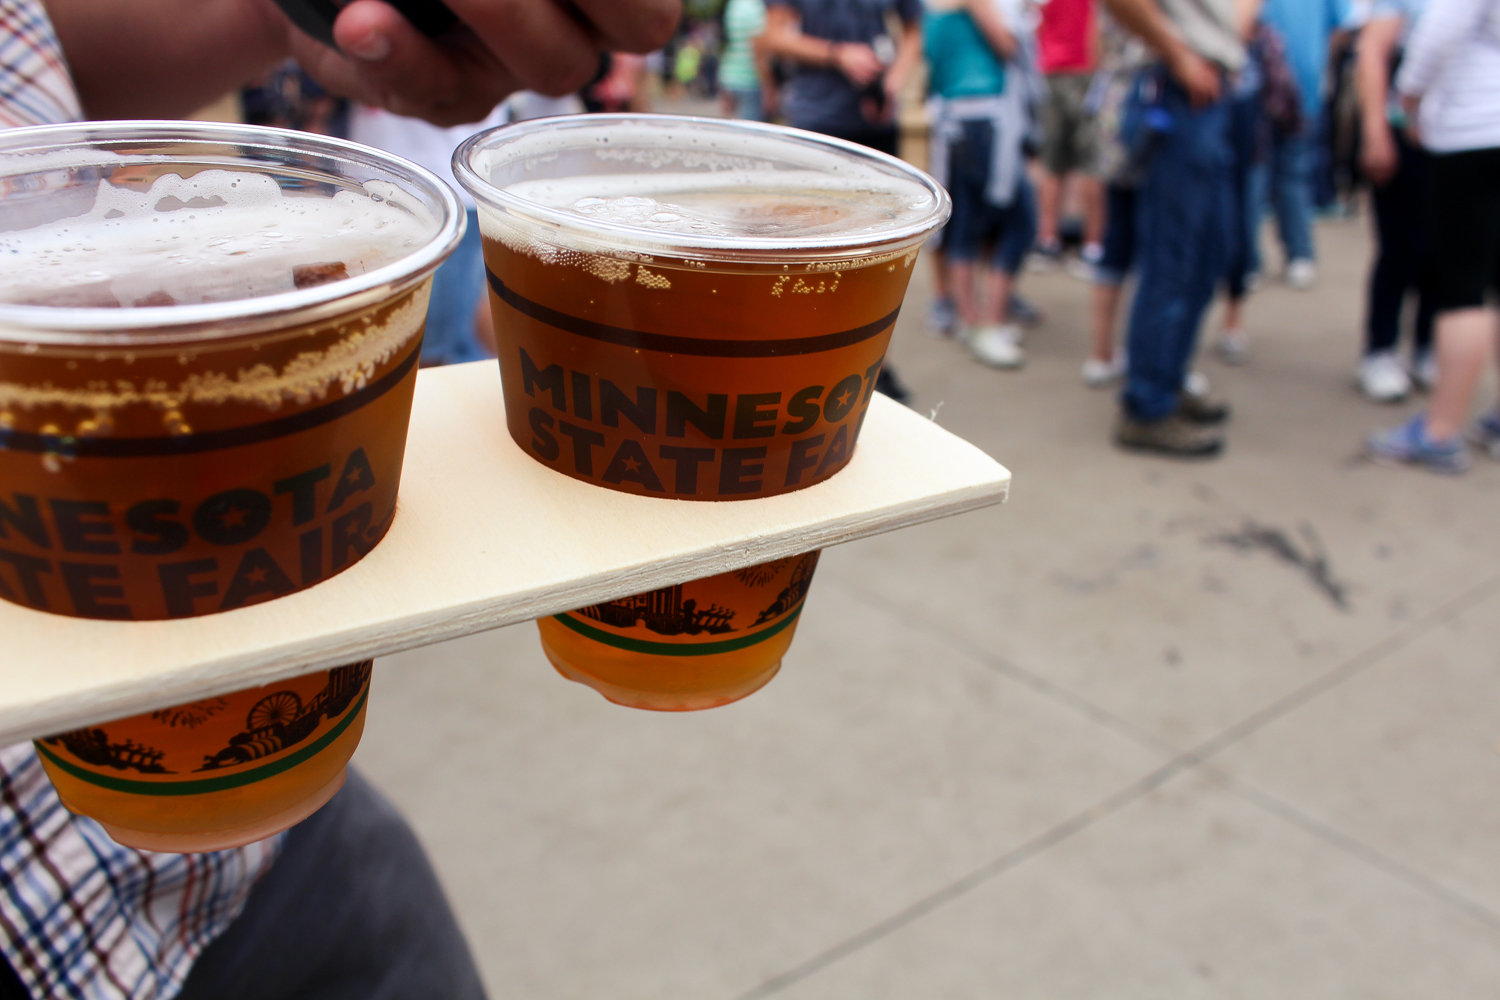 Summit Beer on a Stick at the Minnesota State Fair 2016 via The Midwestival